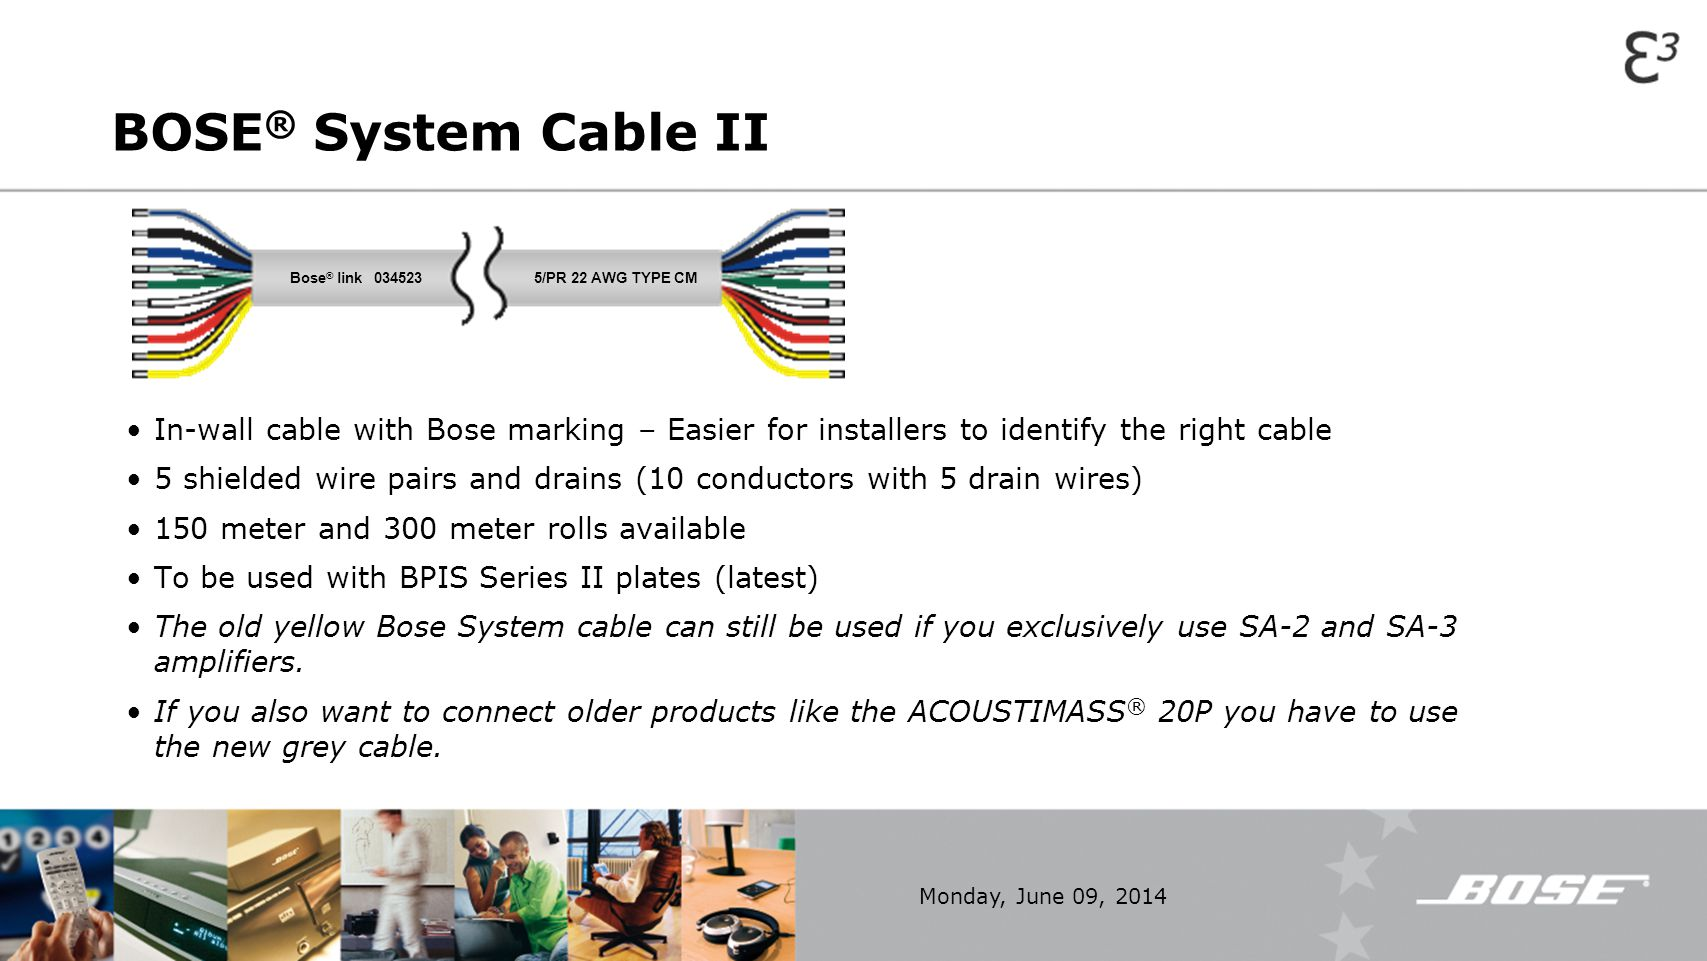 Bose Lifestyle Sa 3 Amplifier Wiring Diagram 44 Systems For Home Diagrams Ppt Video Online Download Bosec2ae System Cable Ii Bosec2